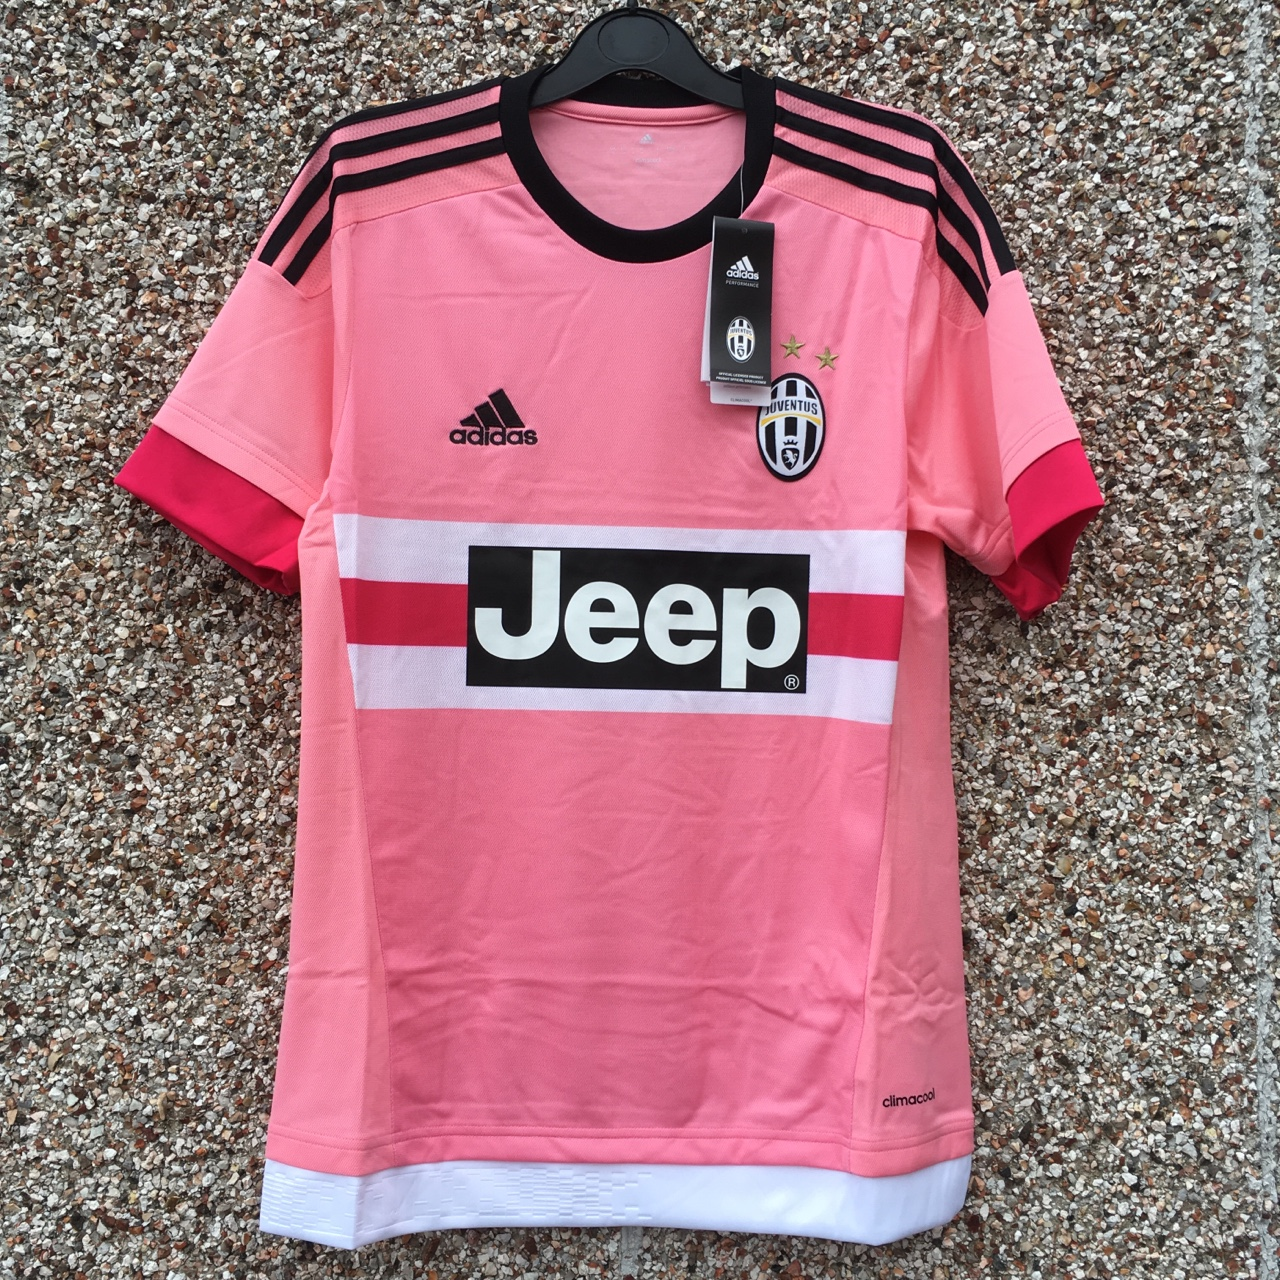 purchase cheap 61cfd ab95a DOWN TO THE LAST FEW. Official Adidas Juventus pink ...